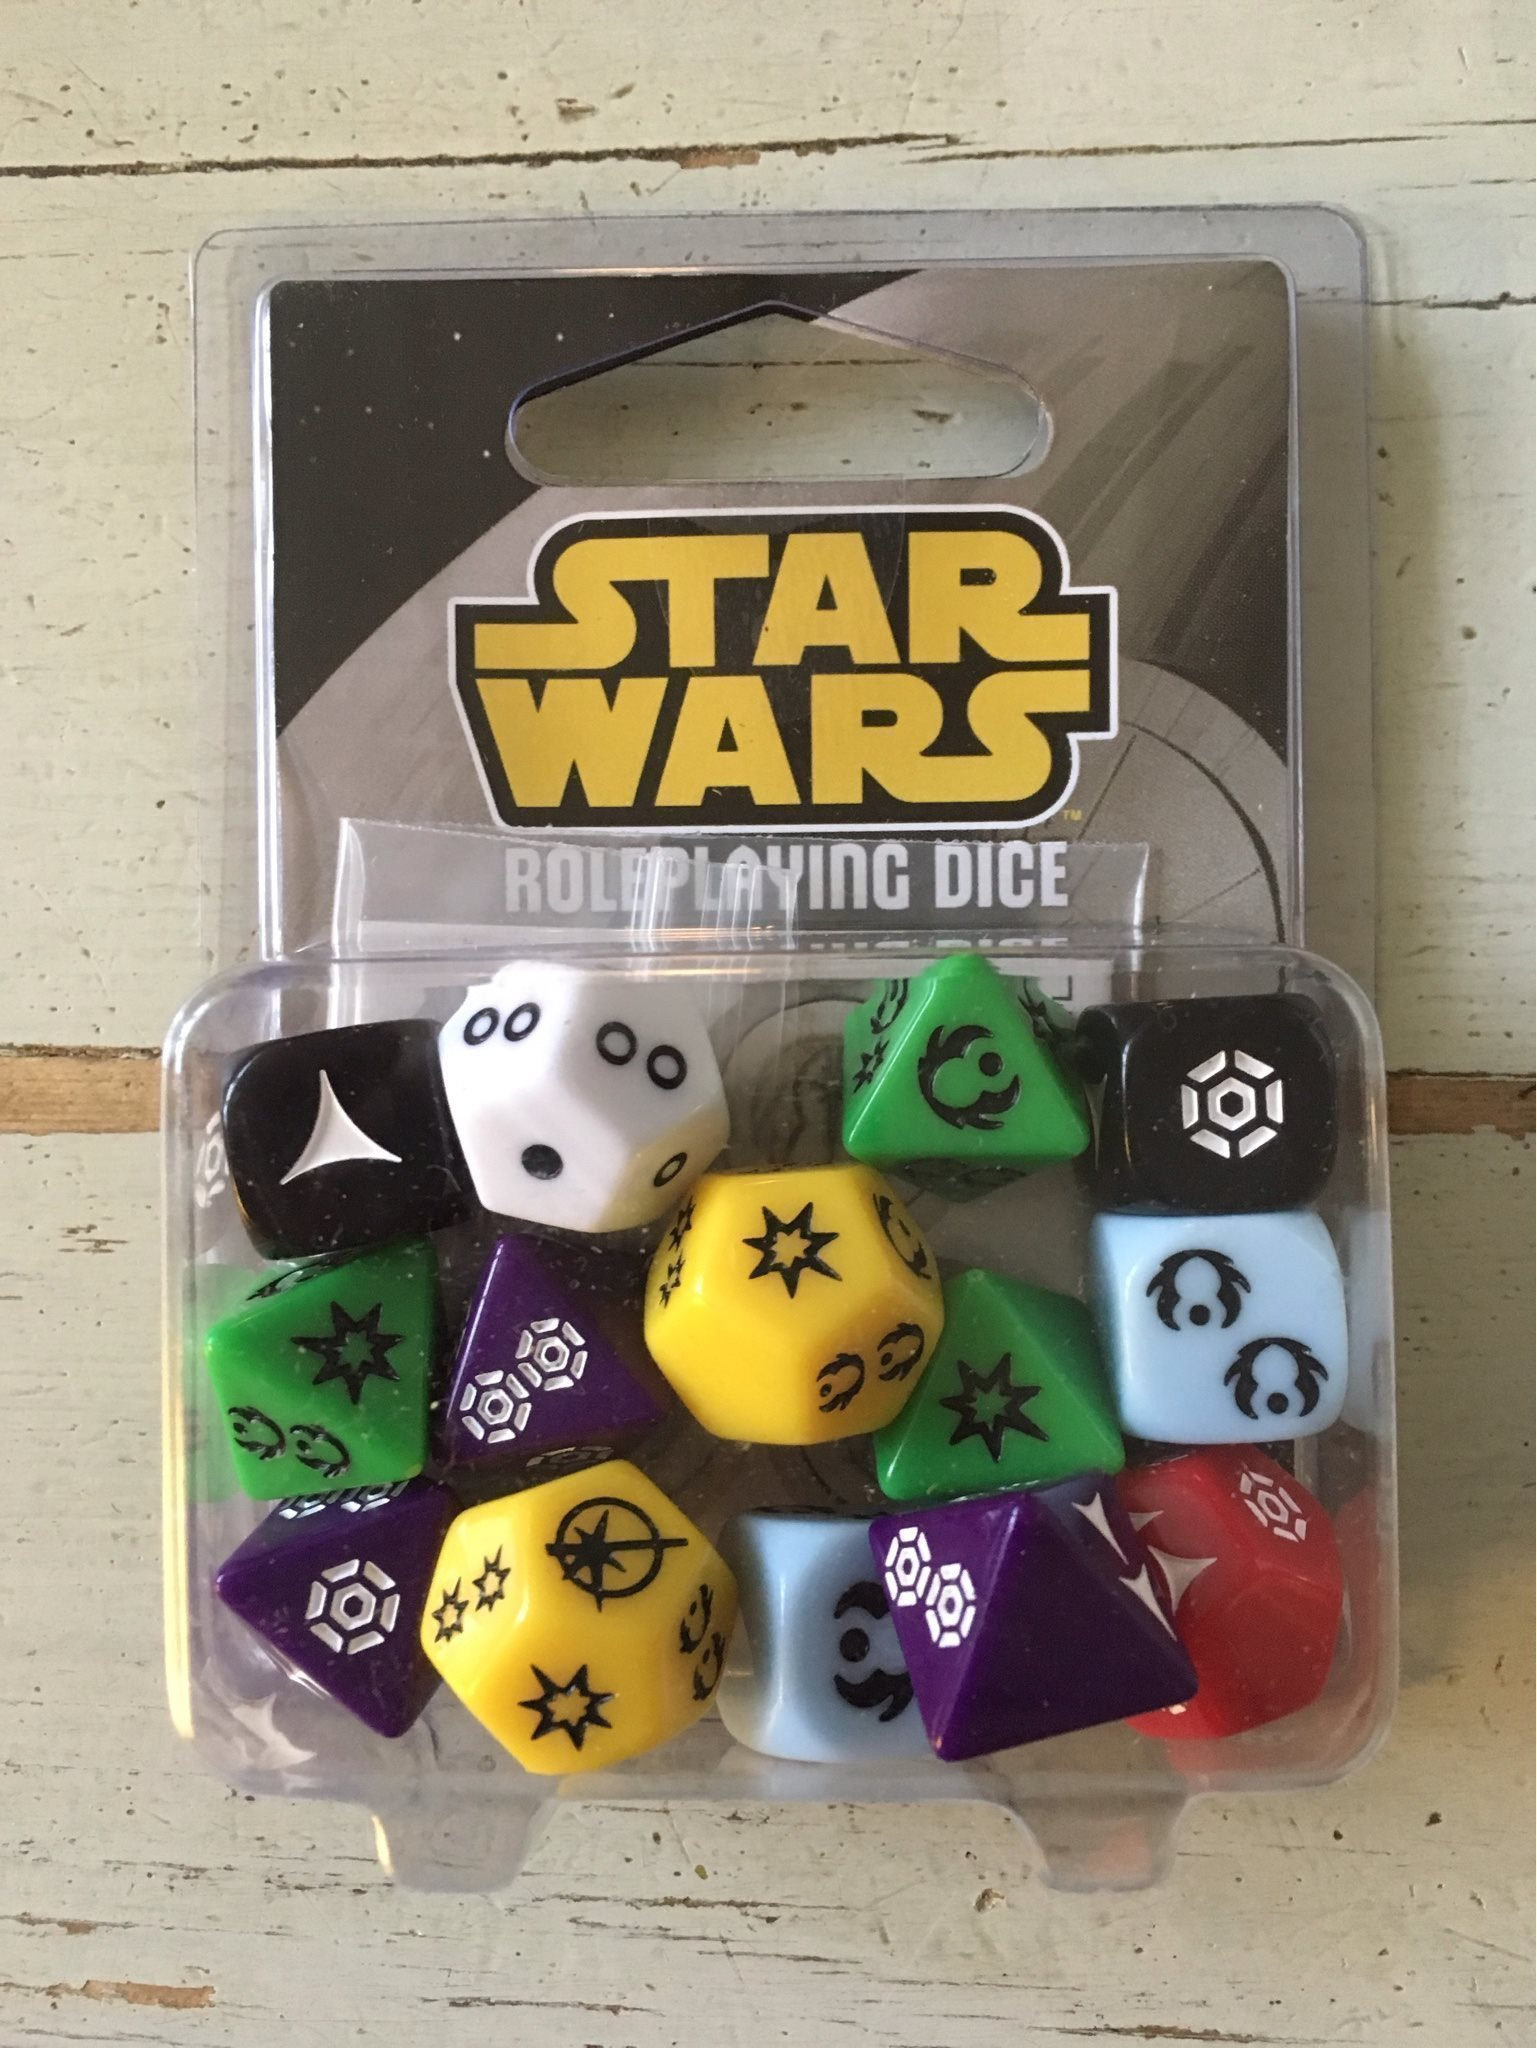 Star Wars Roleplaying Game Dice!